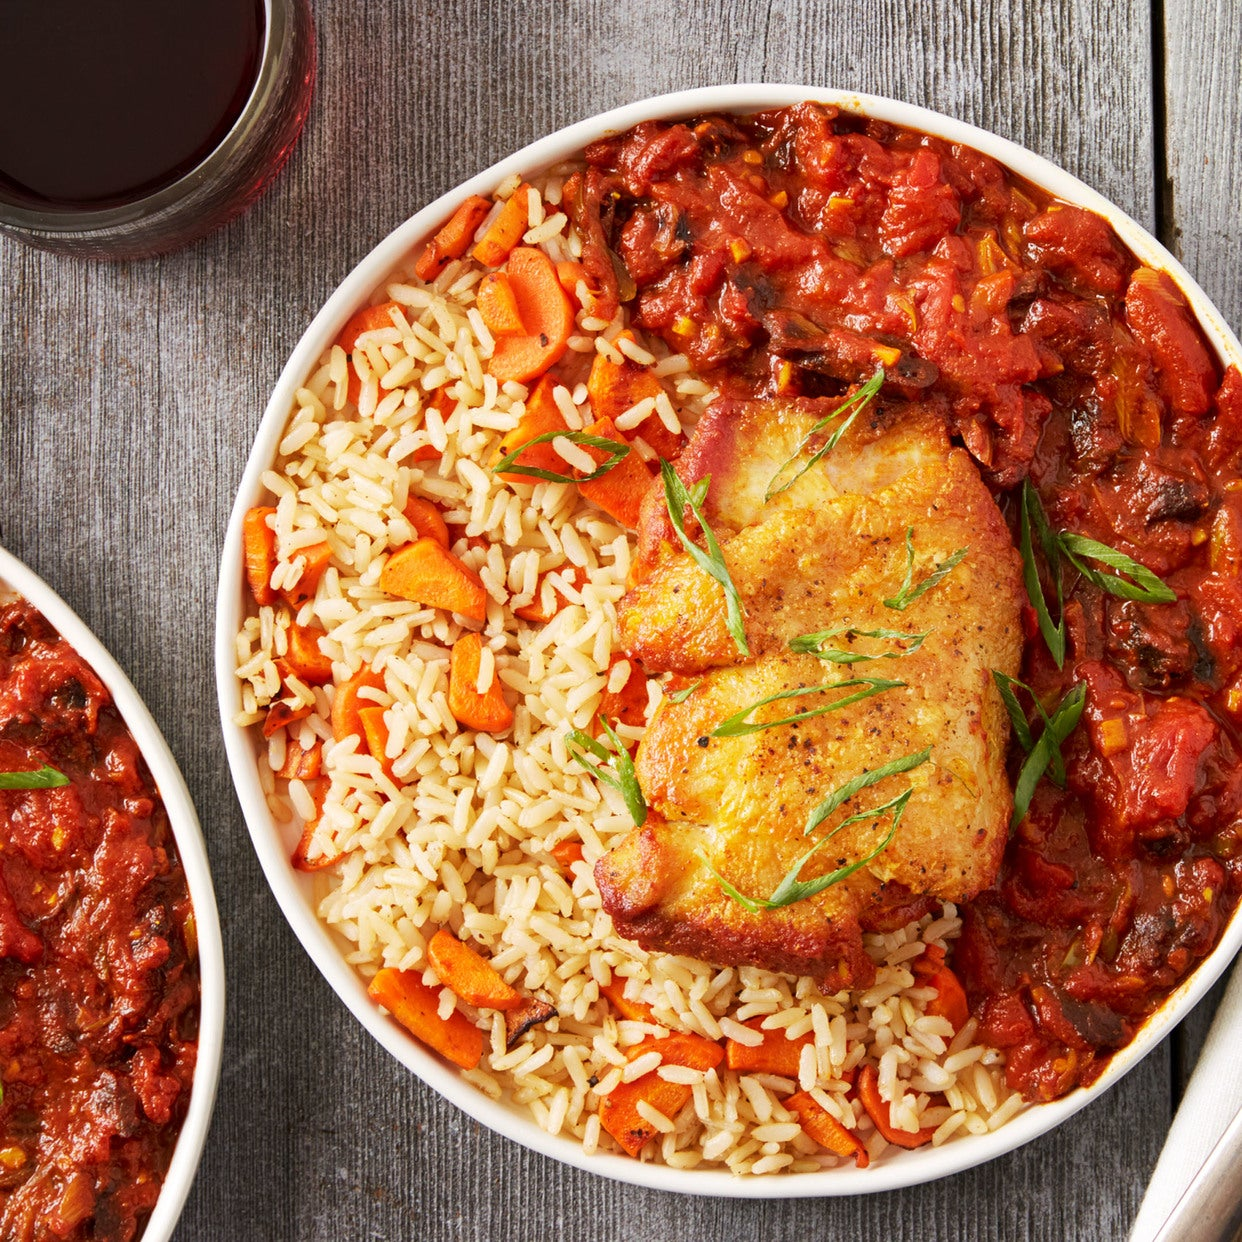 Recipe moroccan chicken with prunes brown rice blue apron moroccan chicken with prunes brown rice forumfinder Gallery